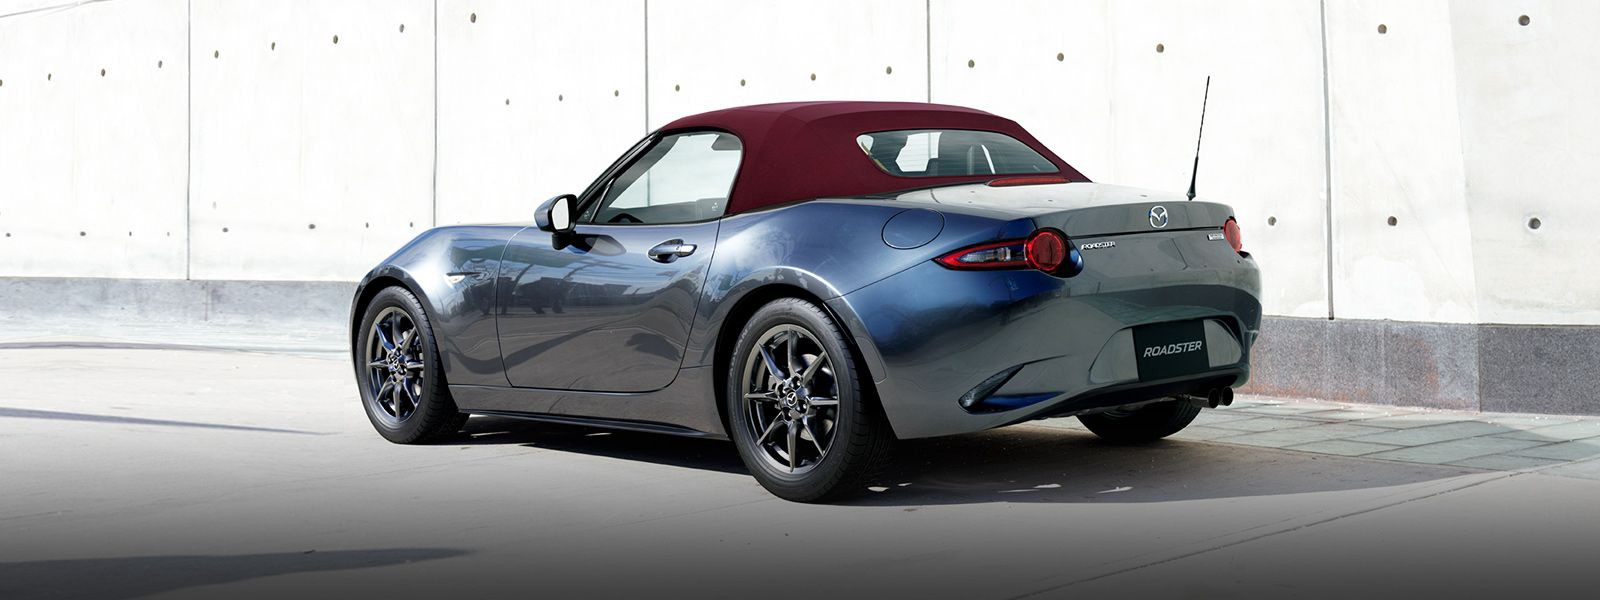 Vehicle Manufacturers In Japan Mazda Is Today One Of The Most Respected And Well Known